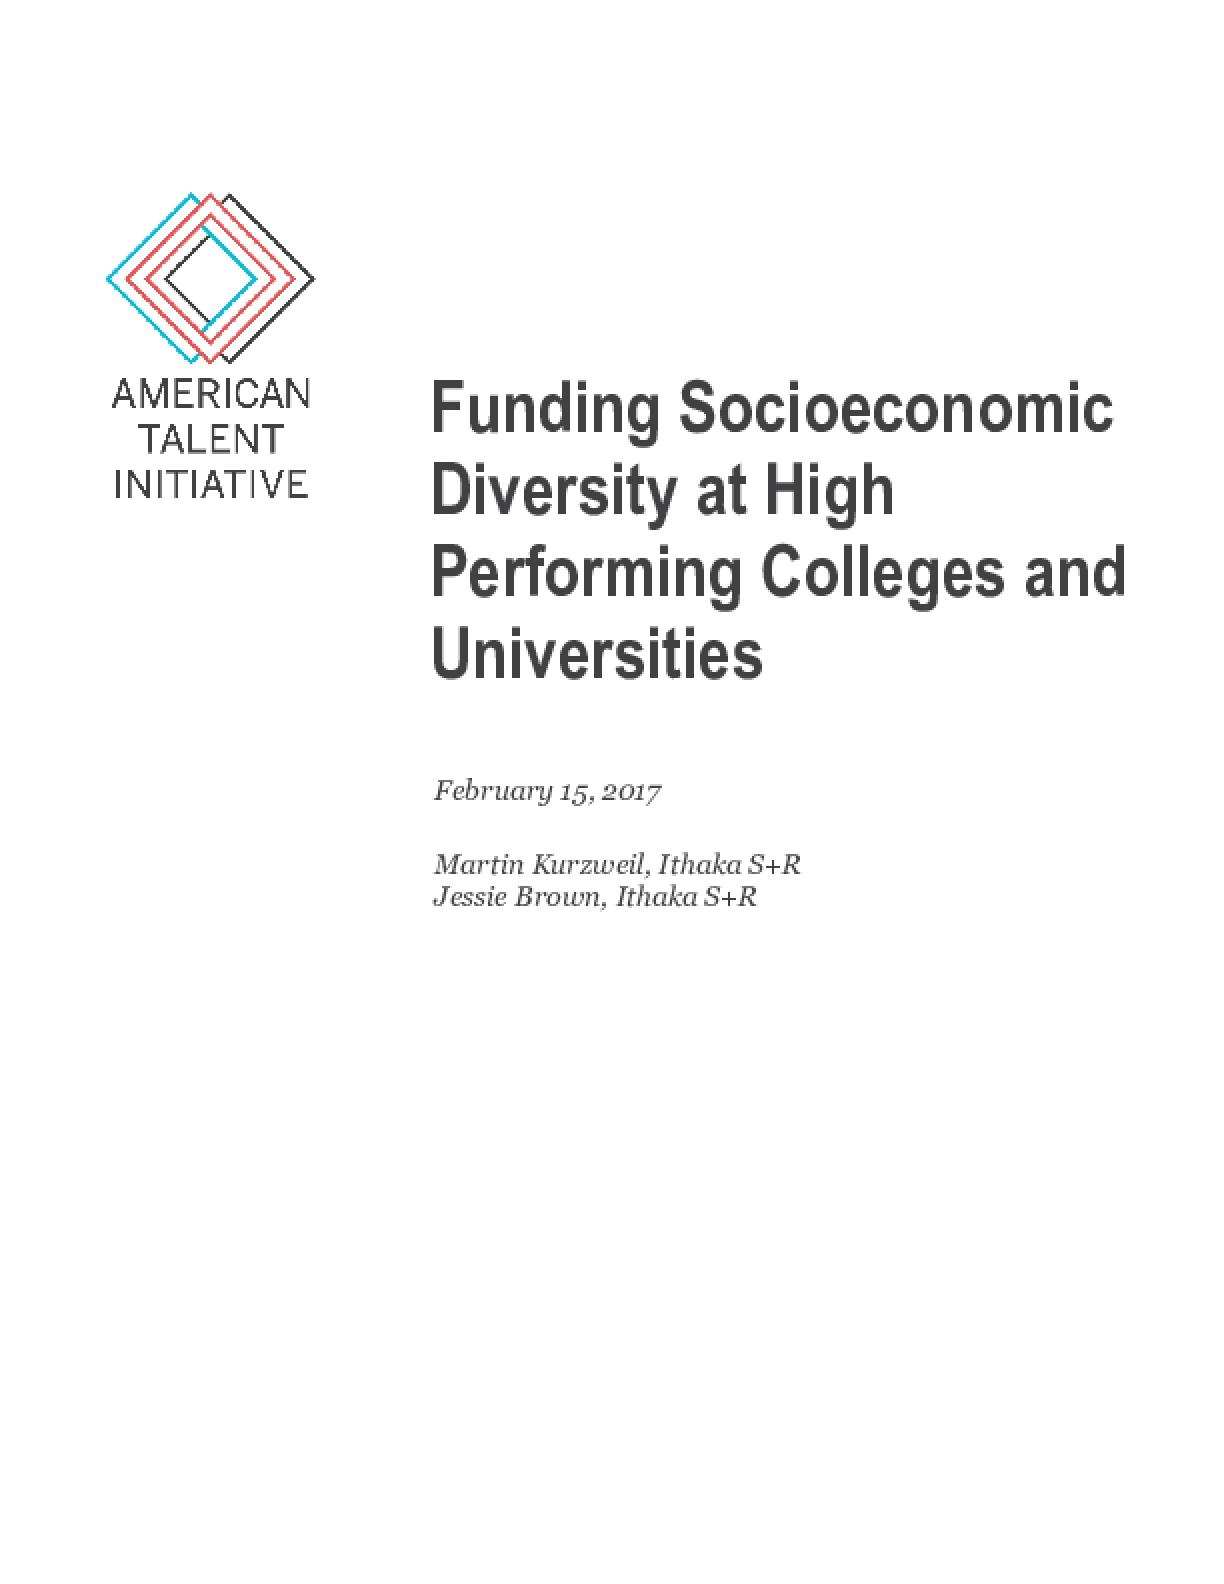 Funding Socioeconomic Diversity at High Performing Colleges and Universities